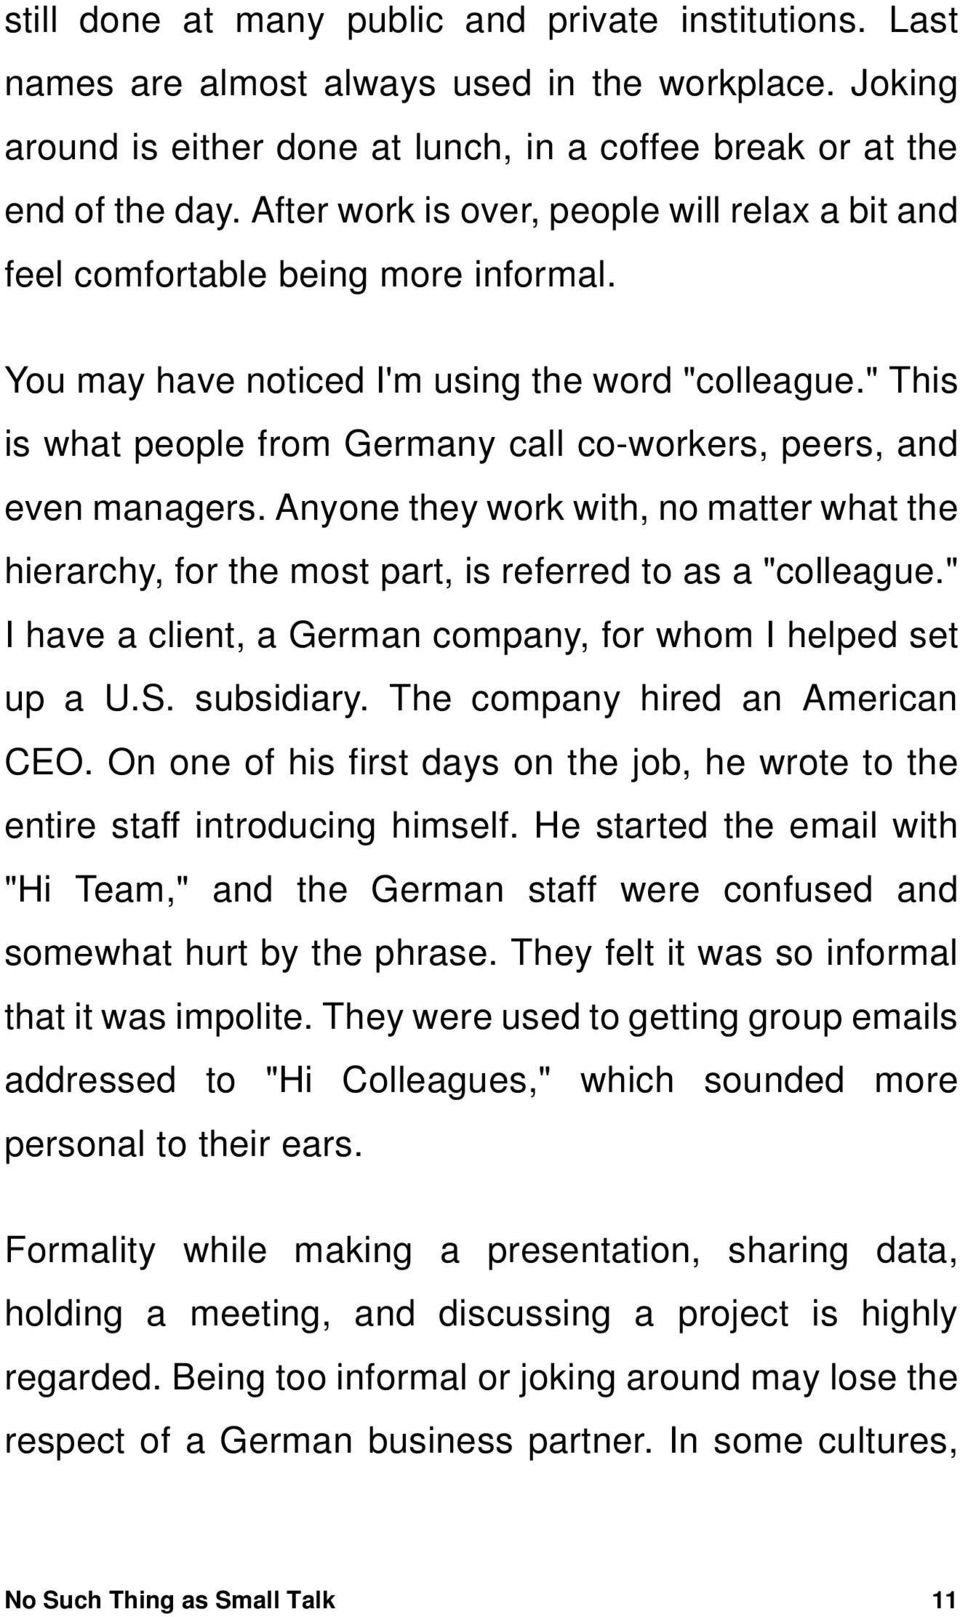 """ This is what people from Germany call co-workers, peers, and even managers. Anyone they work with, no matter what the hierarchy, for the most part, is referred to as a ""colleague."